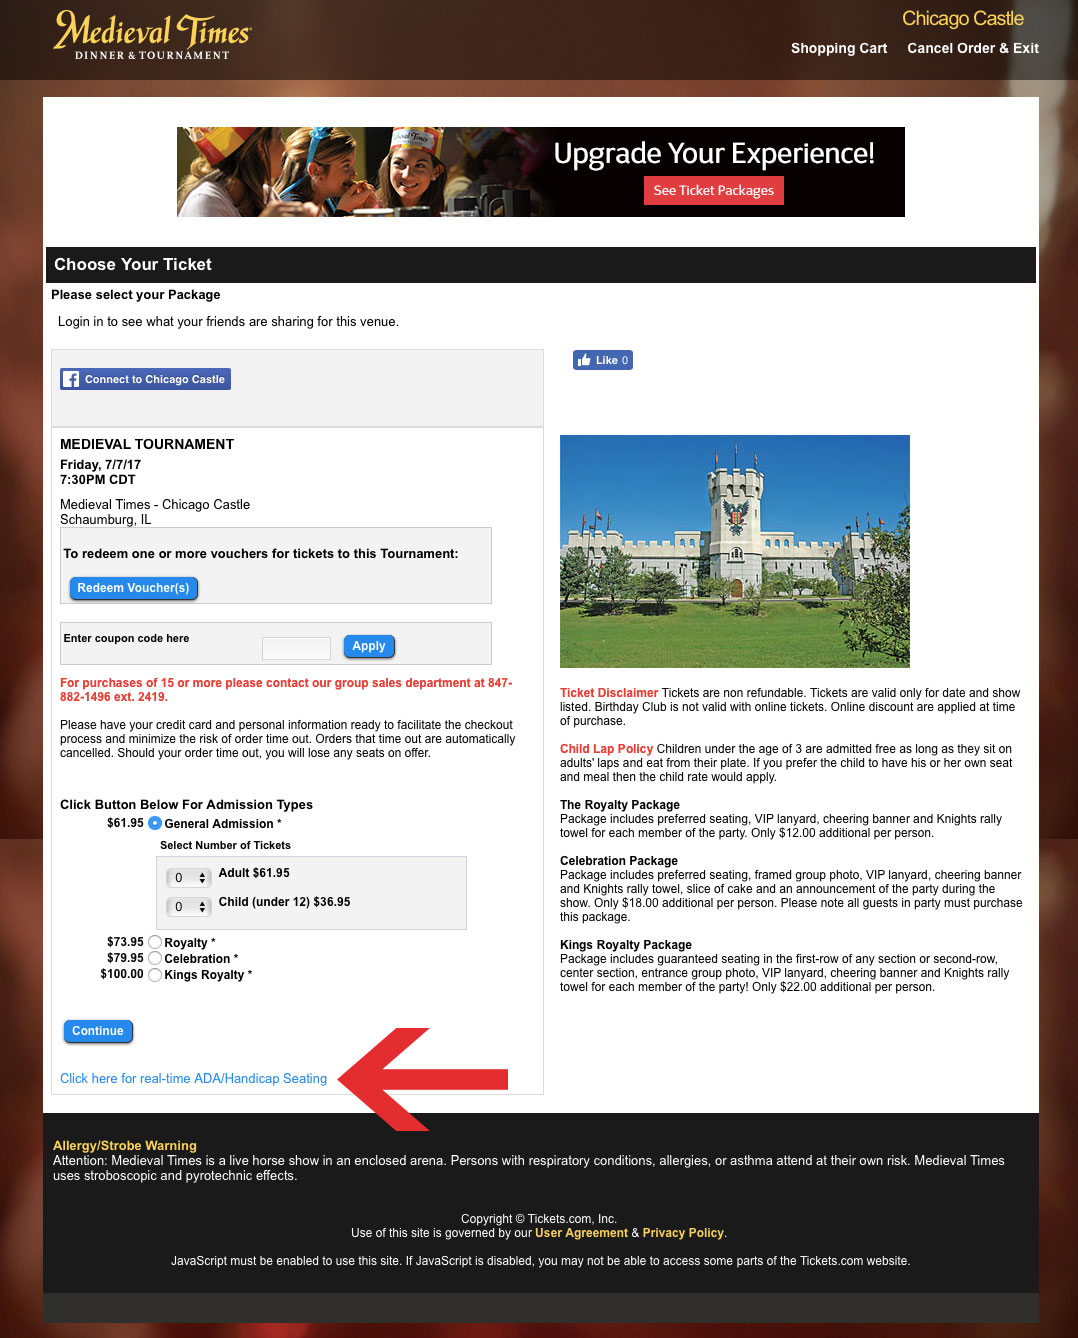 Screenshot of the Medieval Times website ticketing portal.